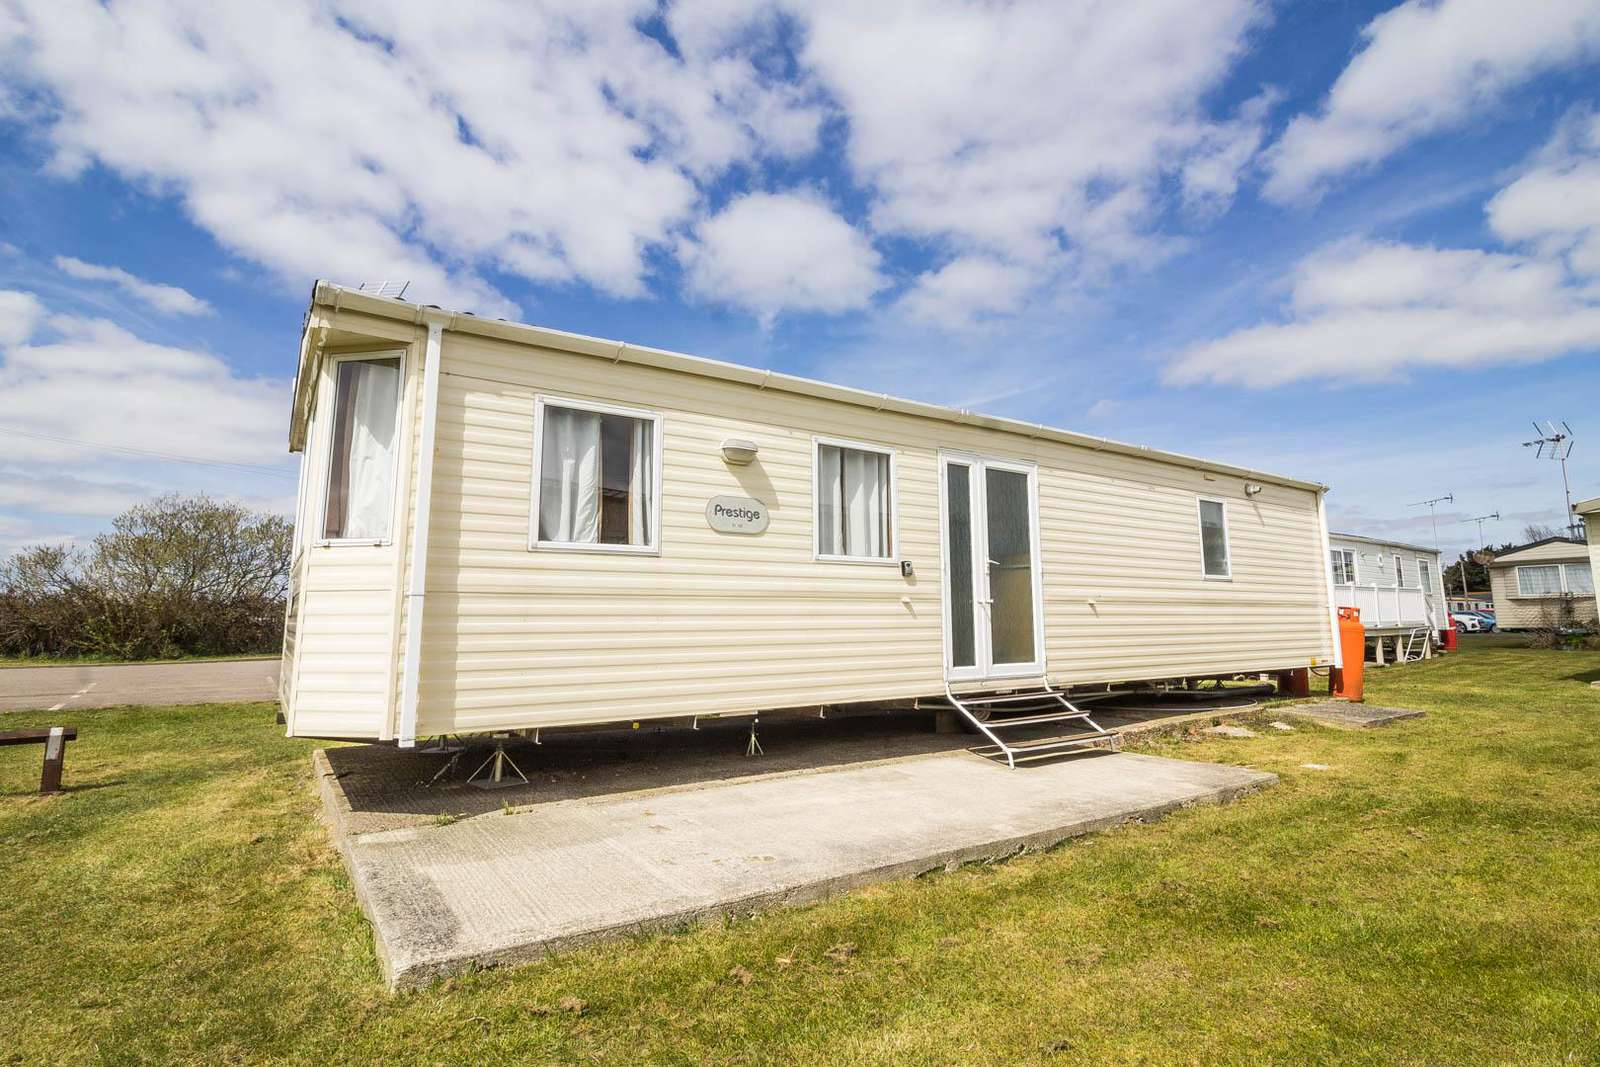 28099GC – Gainsborough Close area, 2 bed, 6 berth caravan with free WiFi. Emerald rated. - property